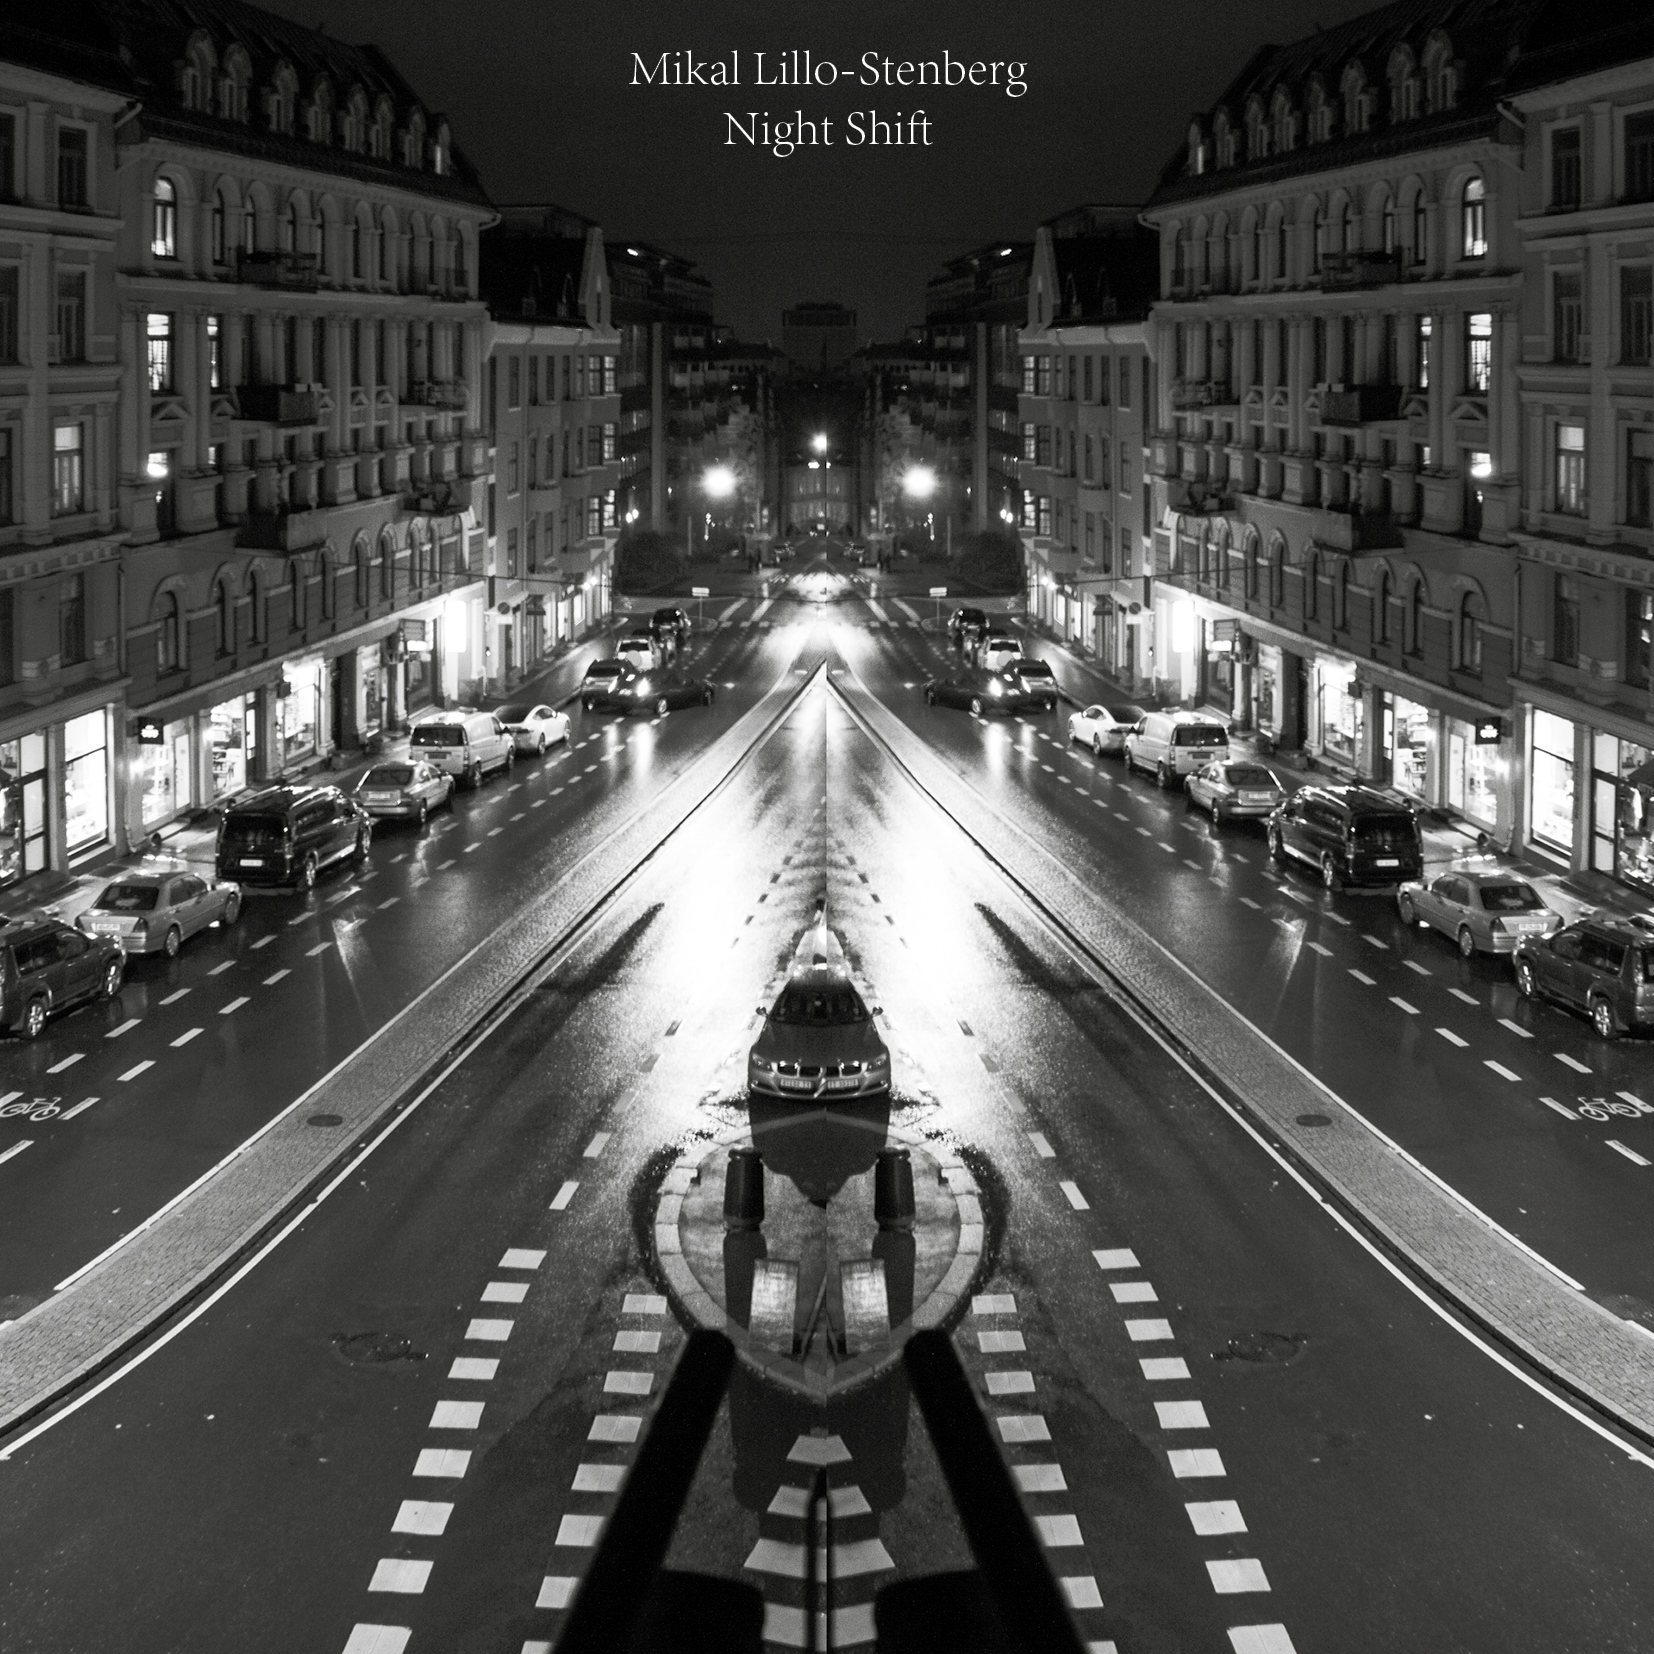 MMx136 Mikal Lillo-Stenberg – Night Shift